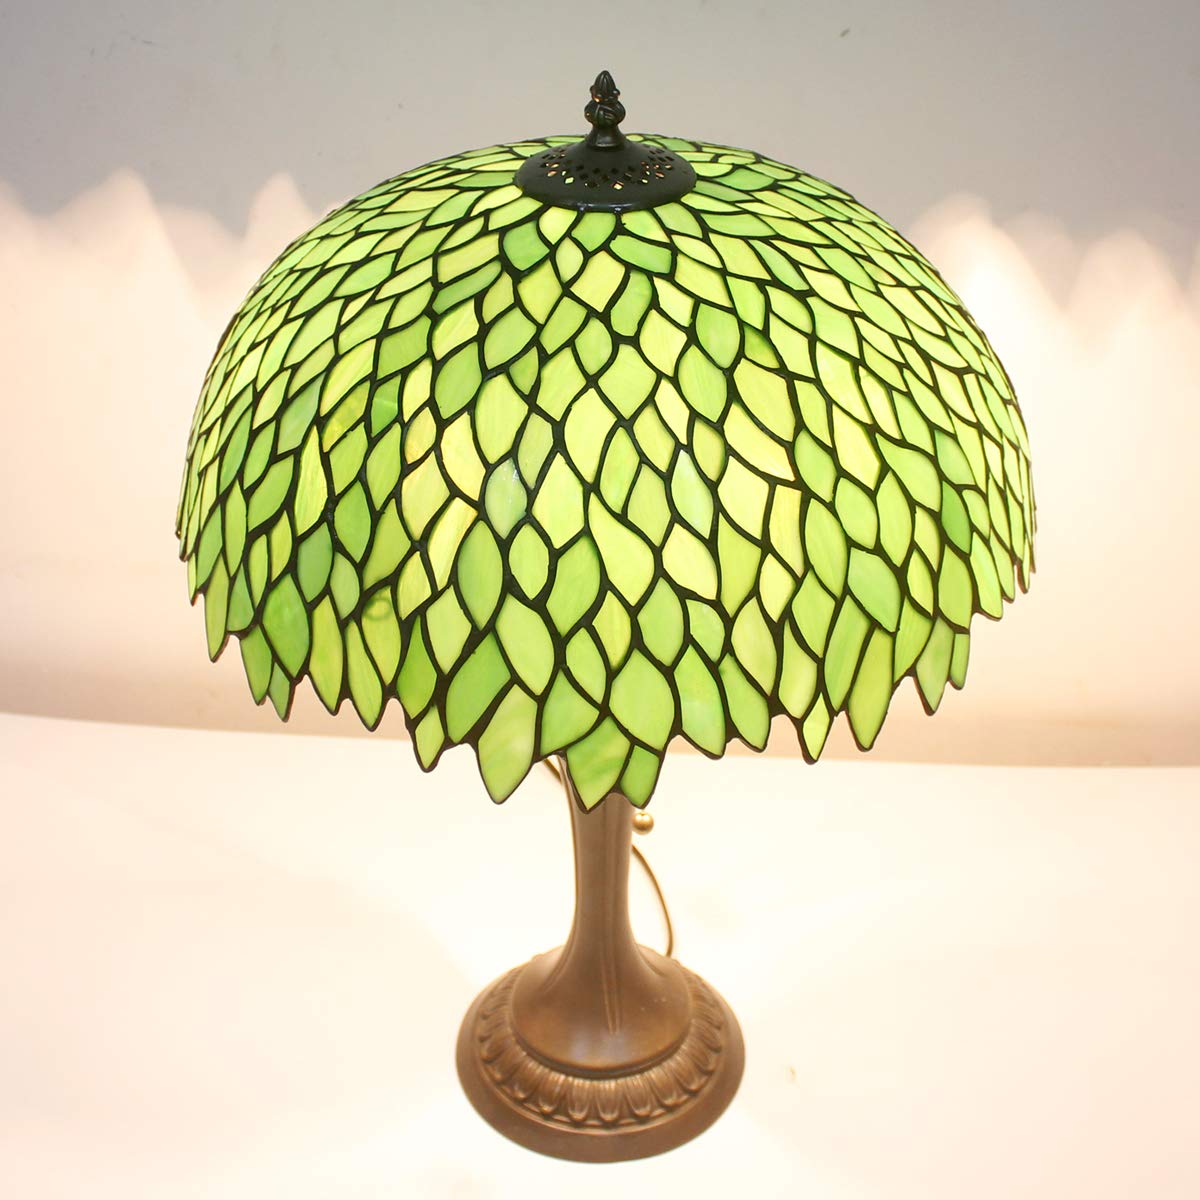 Tiffany Style Table Lamp Stained Glass Beside Desk Lamps 24 Inch Tall 2 Light Pull Chain Green Wisteria Lampshade Antique Base for Living Room Coffee Table Bedroom S523 WERFACTORY (S52316T19)